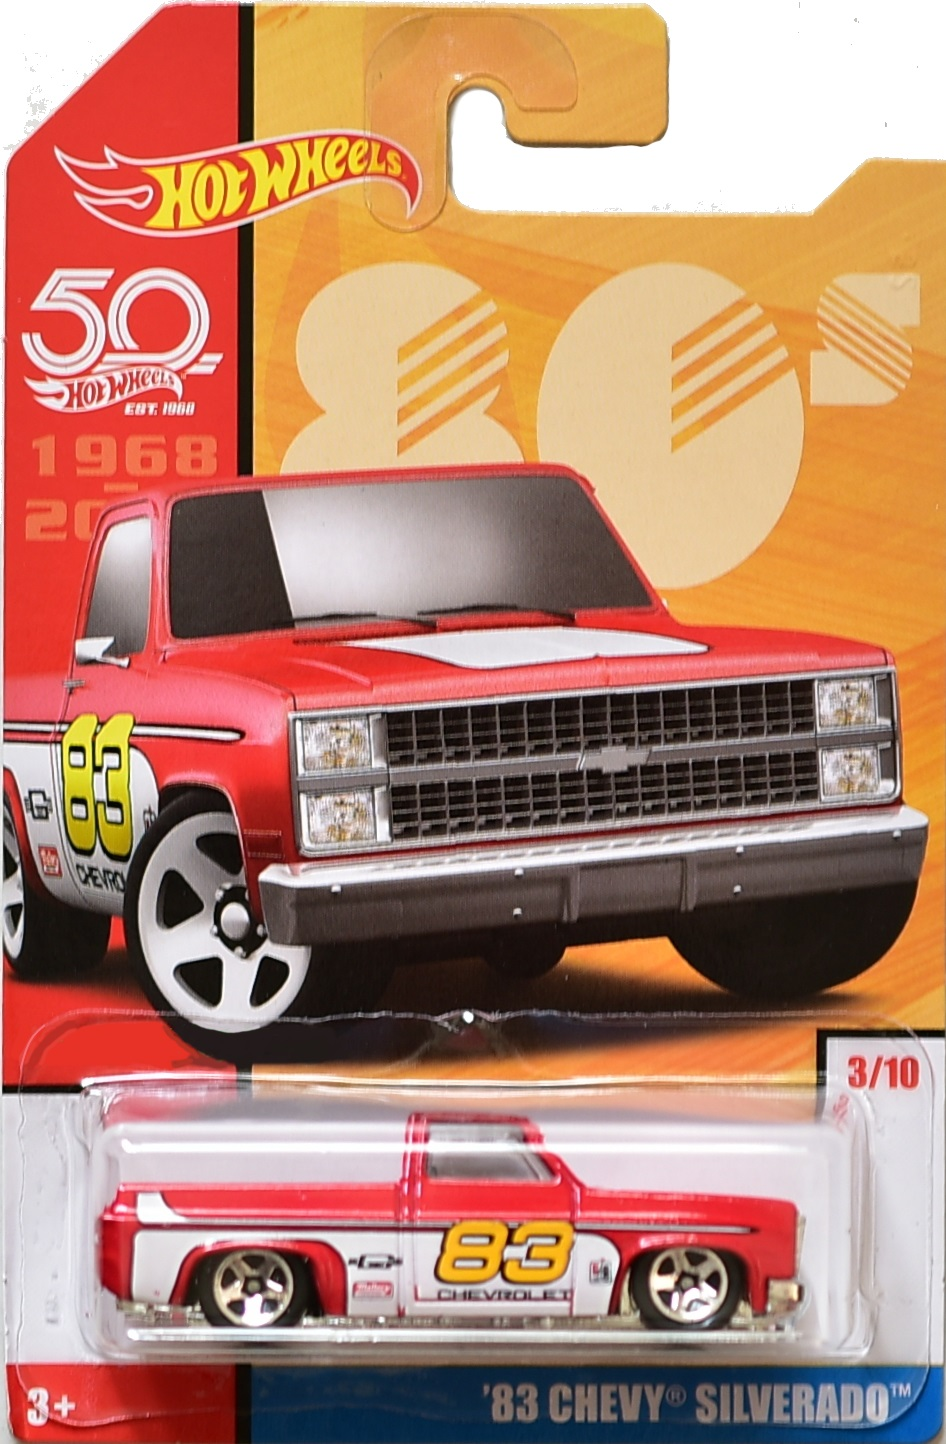 2018 50th Anniversary Throwback Hot Wheels Newsletter